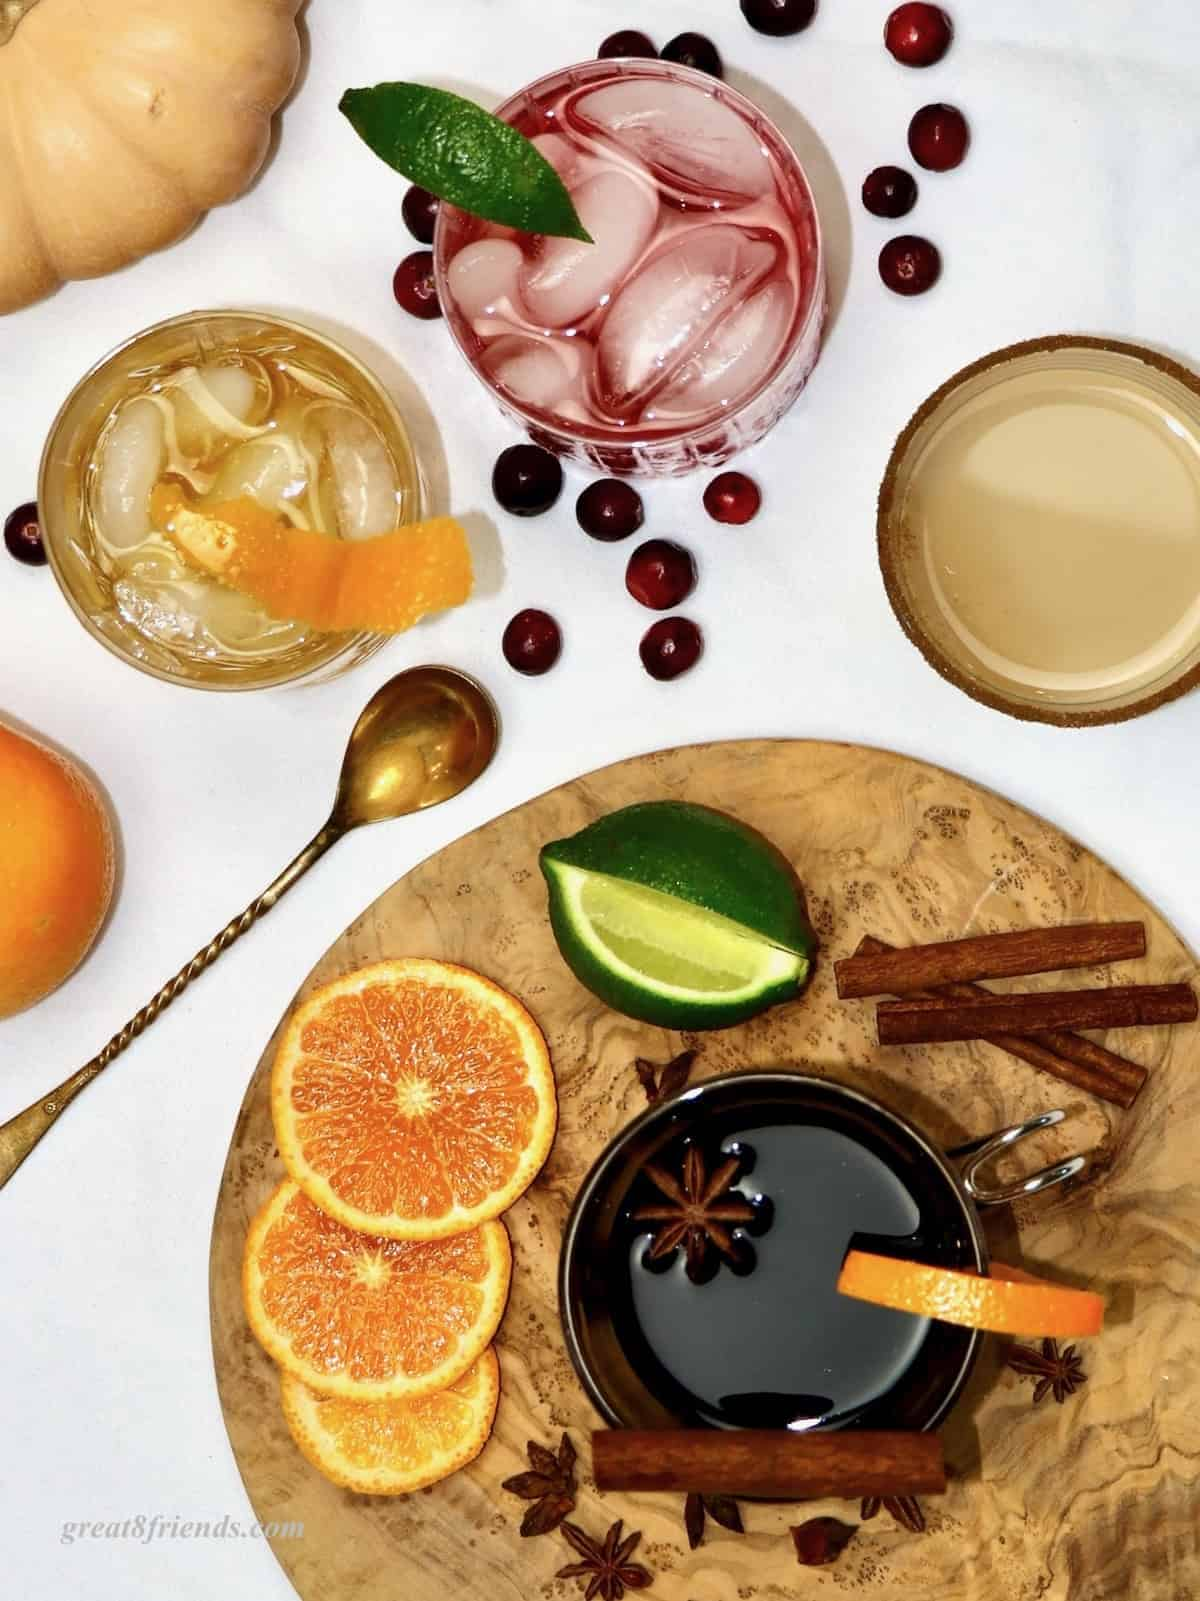 Overhead shot of a variety of fall cocktails with fruits and garnishes.